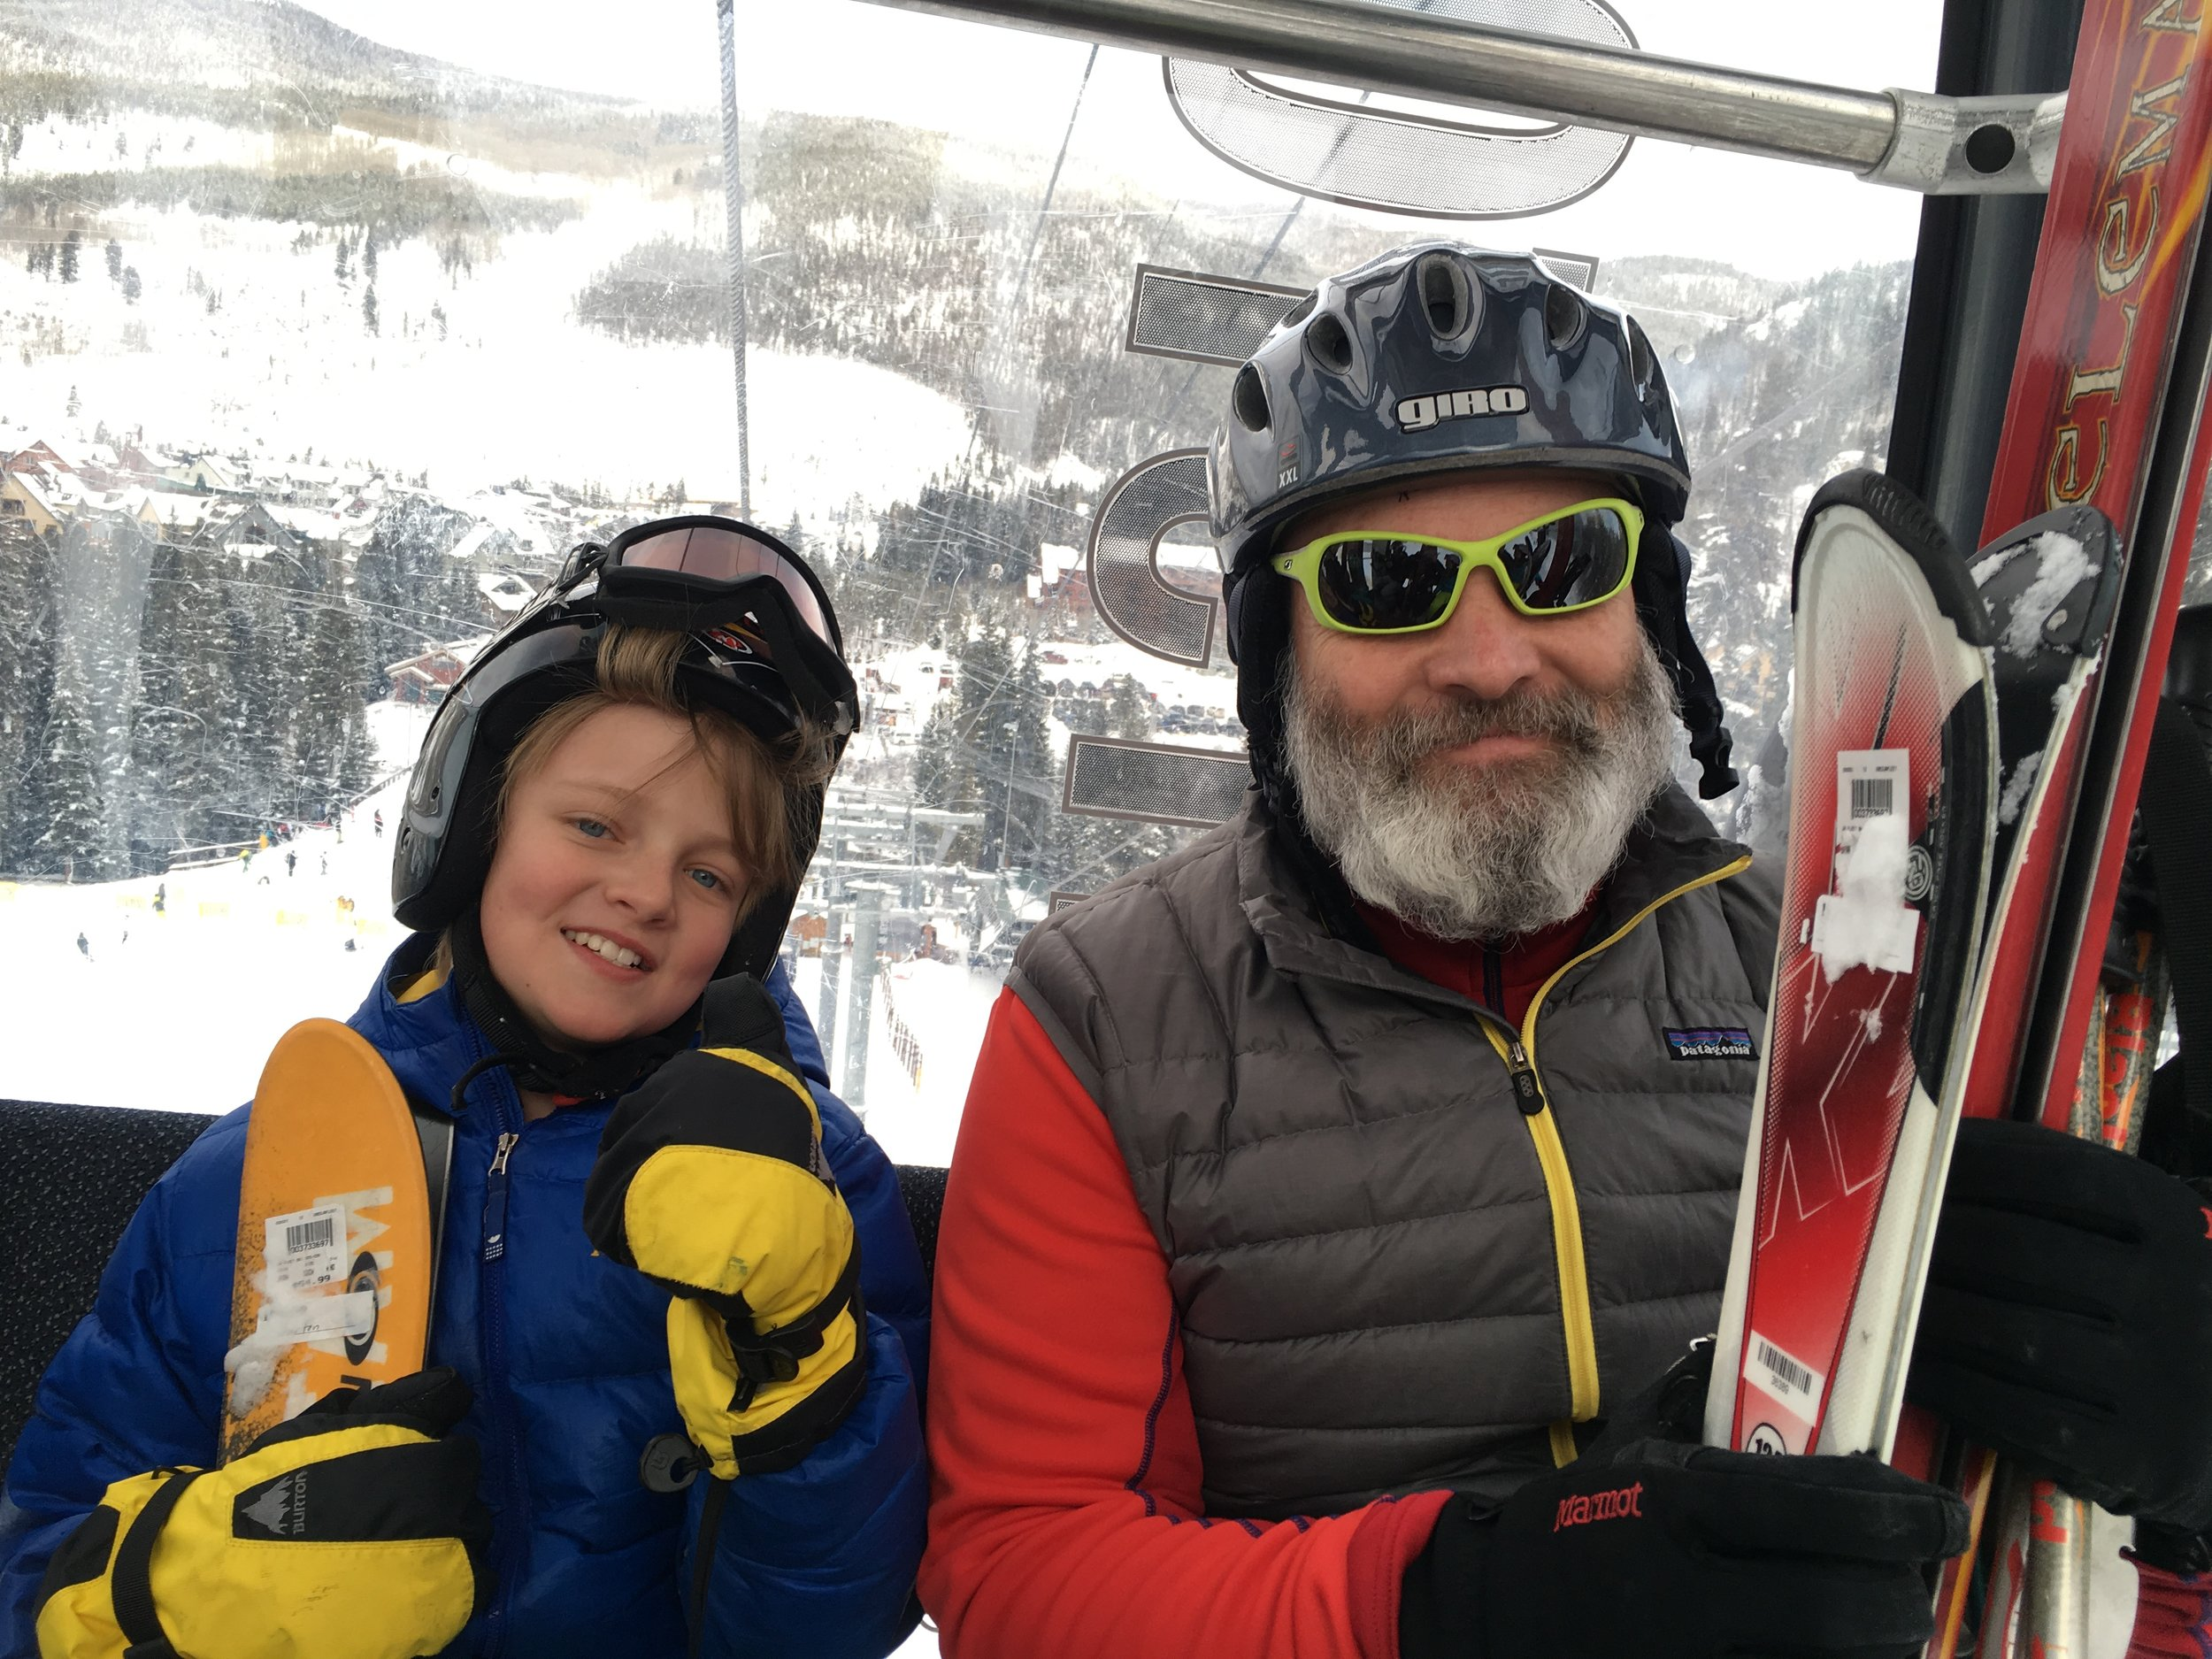 Jake and me in the gondola at Breckenridge